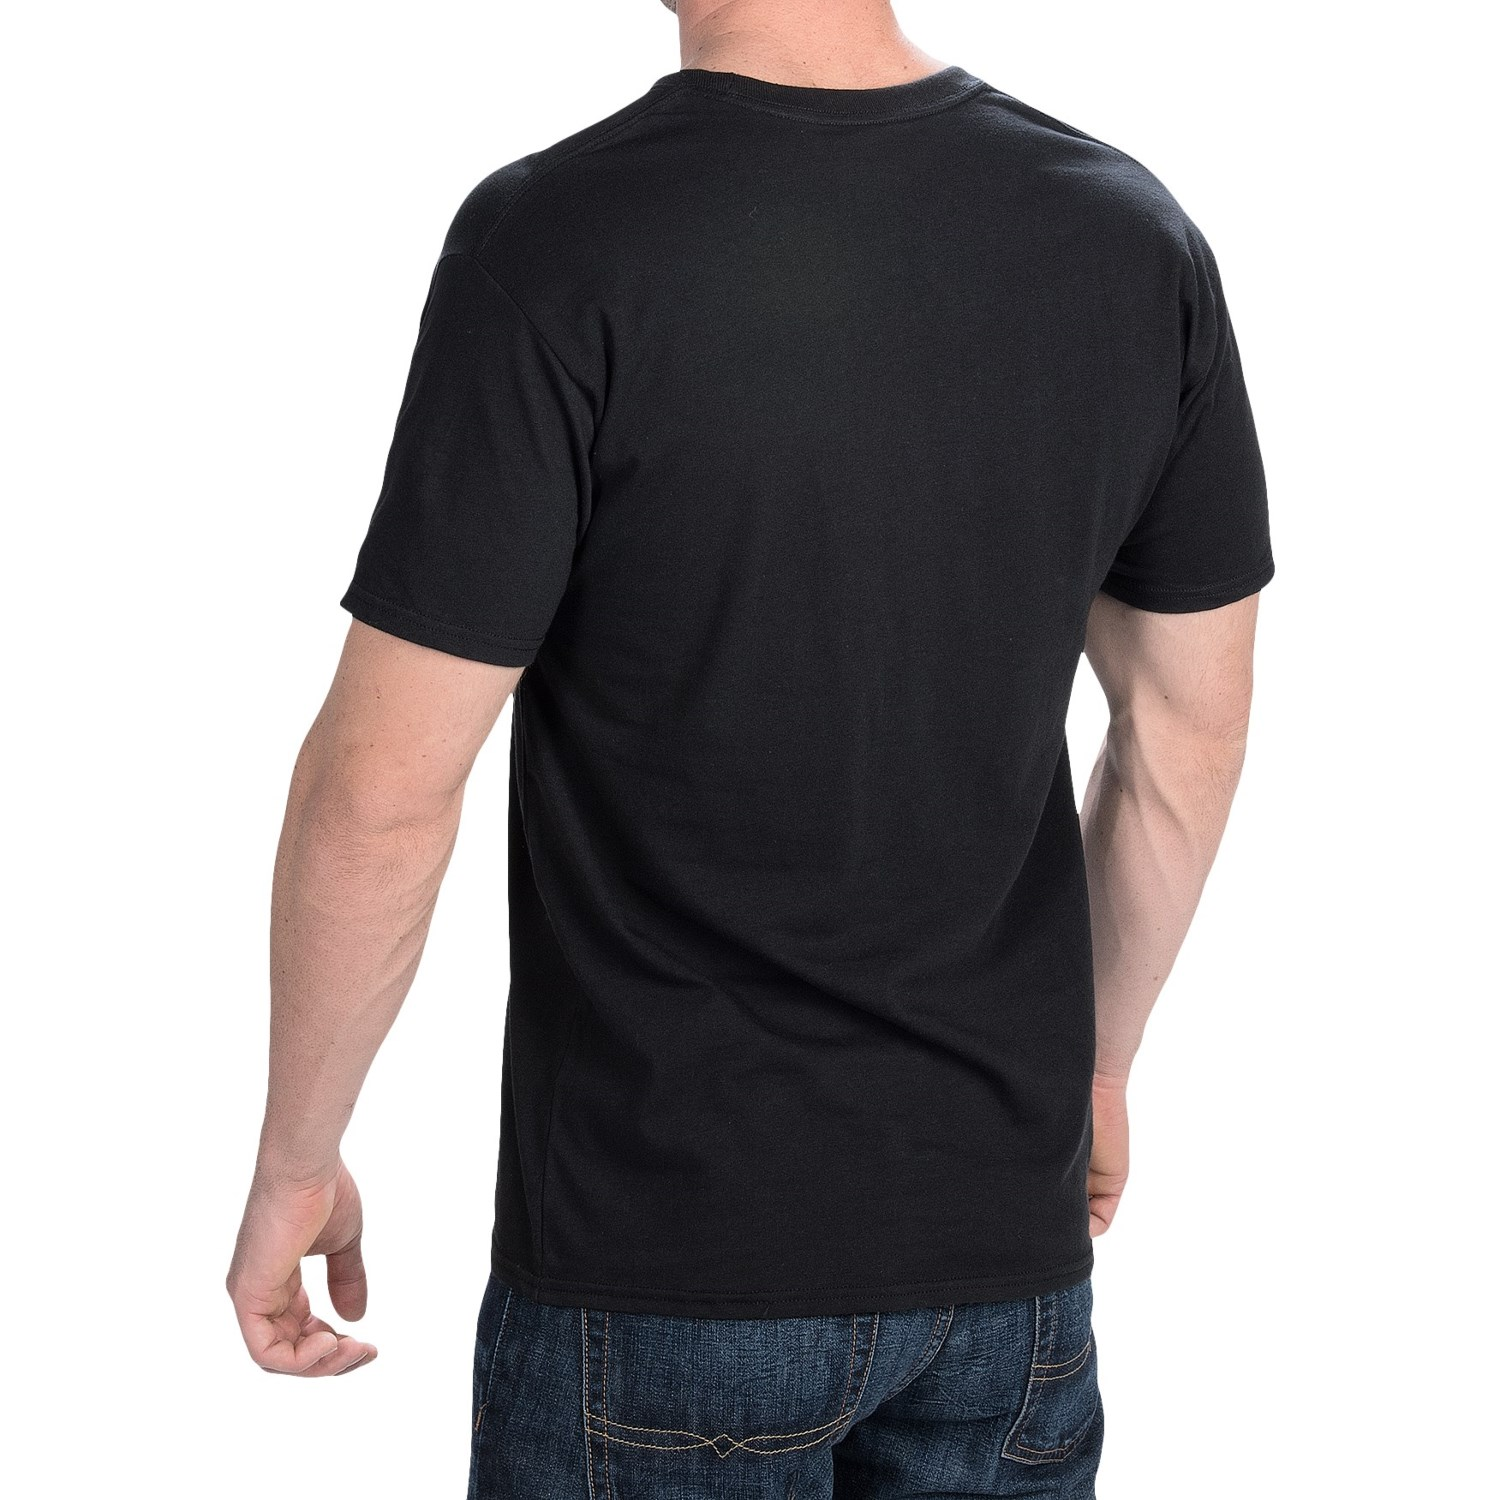 Hanes Solid V Neck T Shirt For Men And Women Save 55